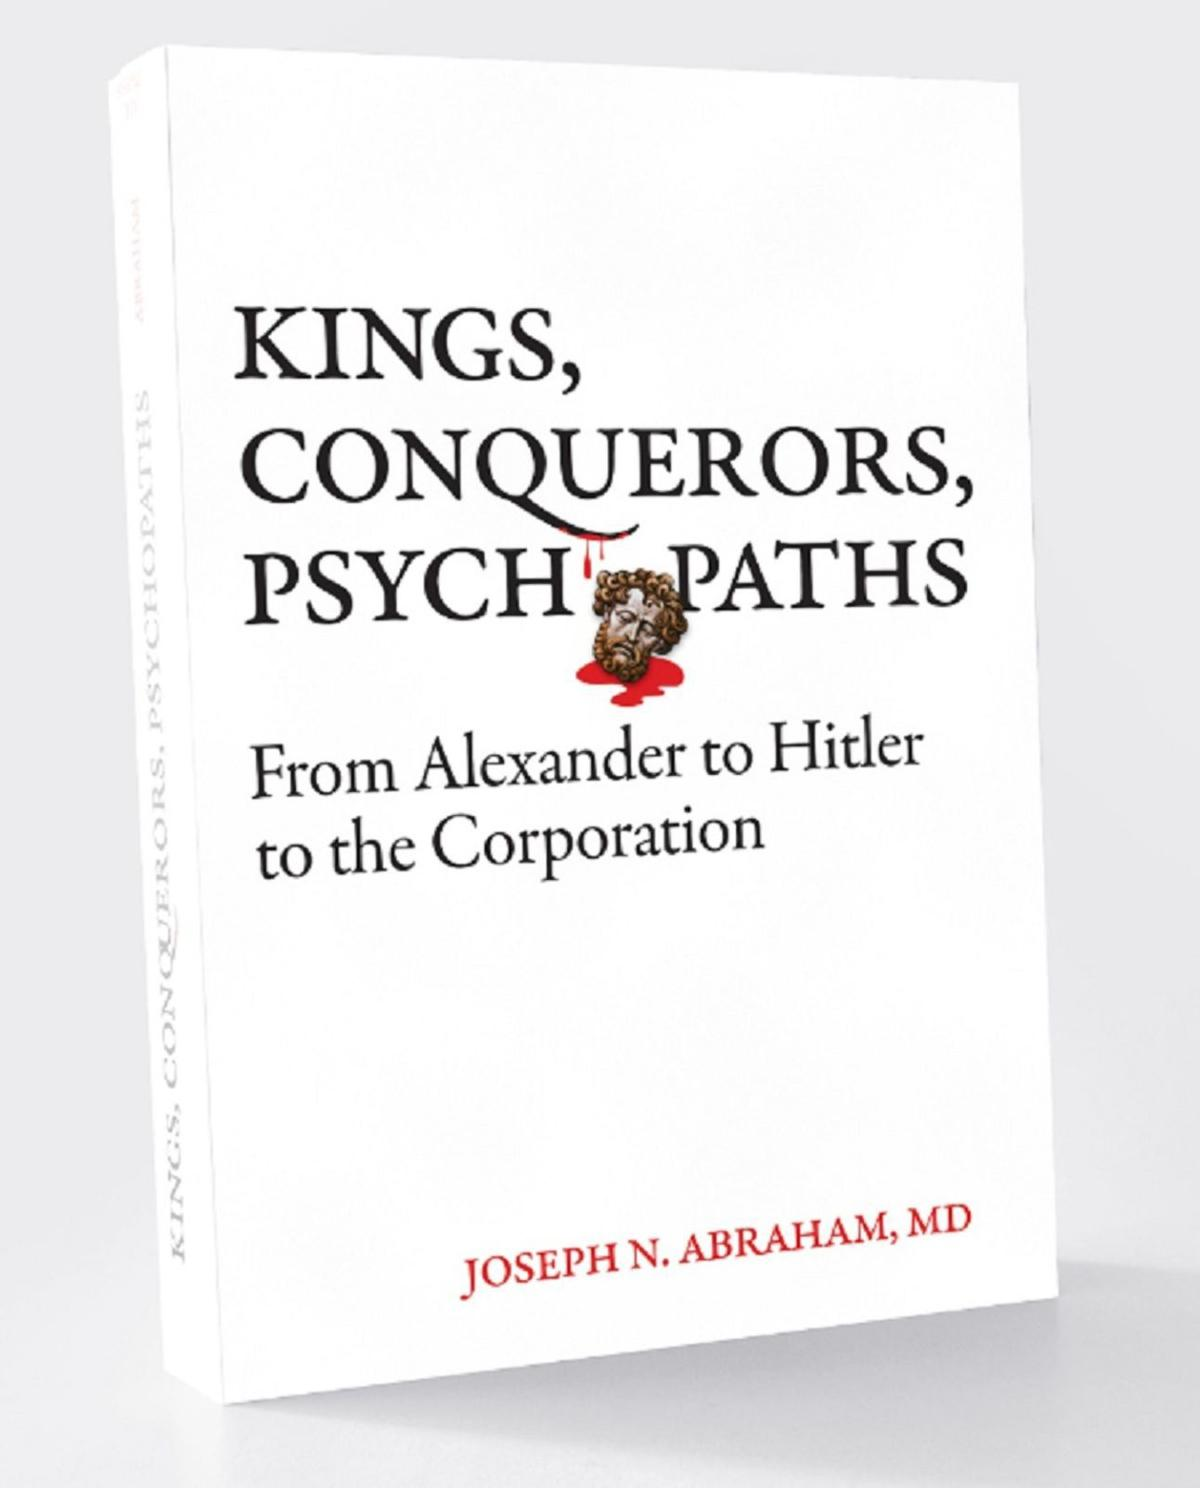 abraham book cover.jpg